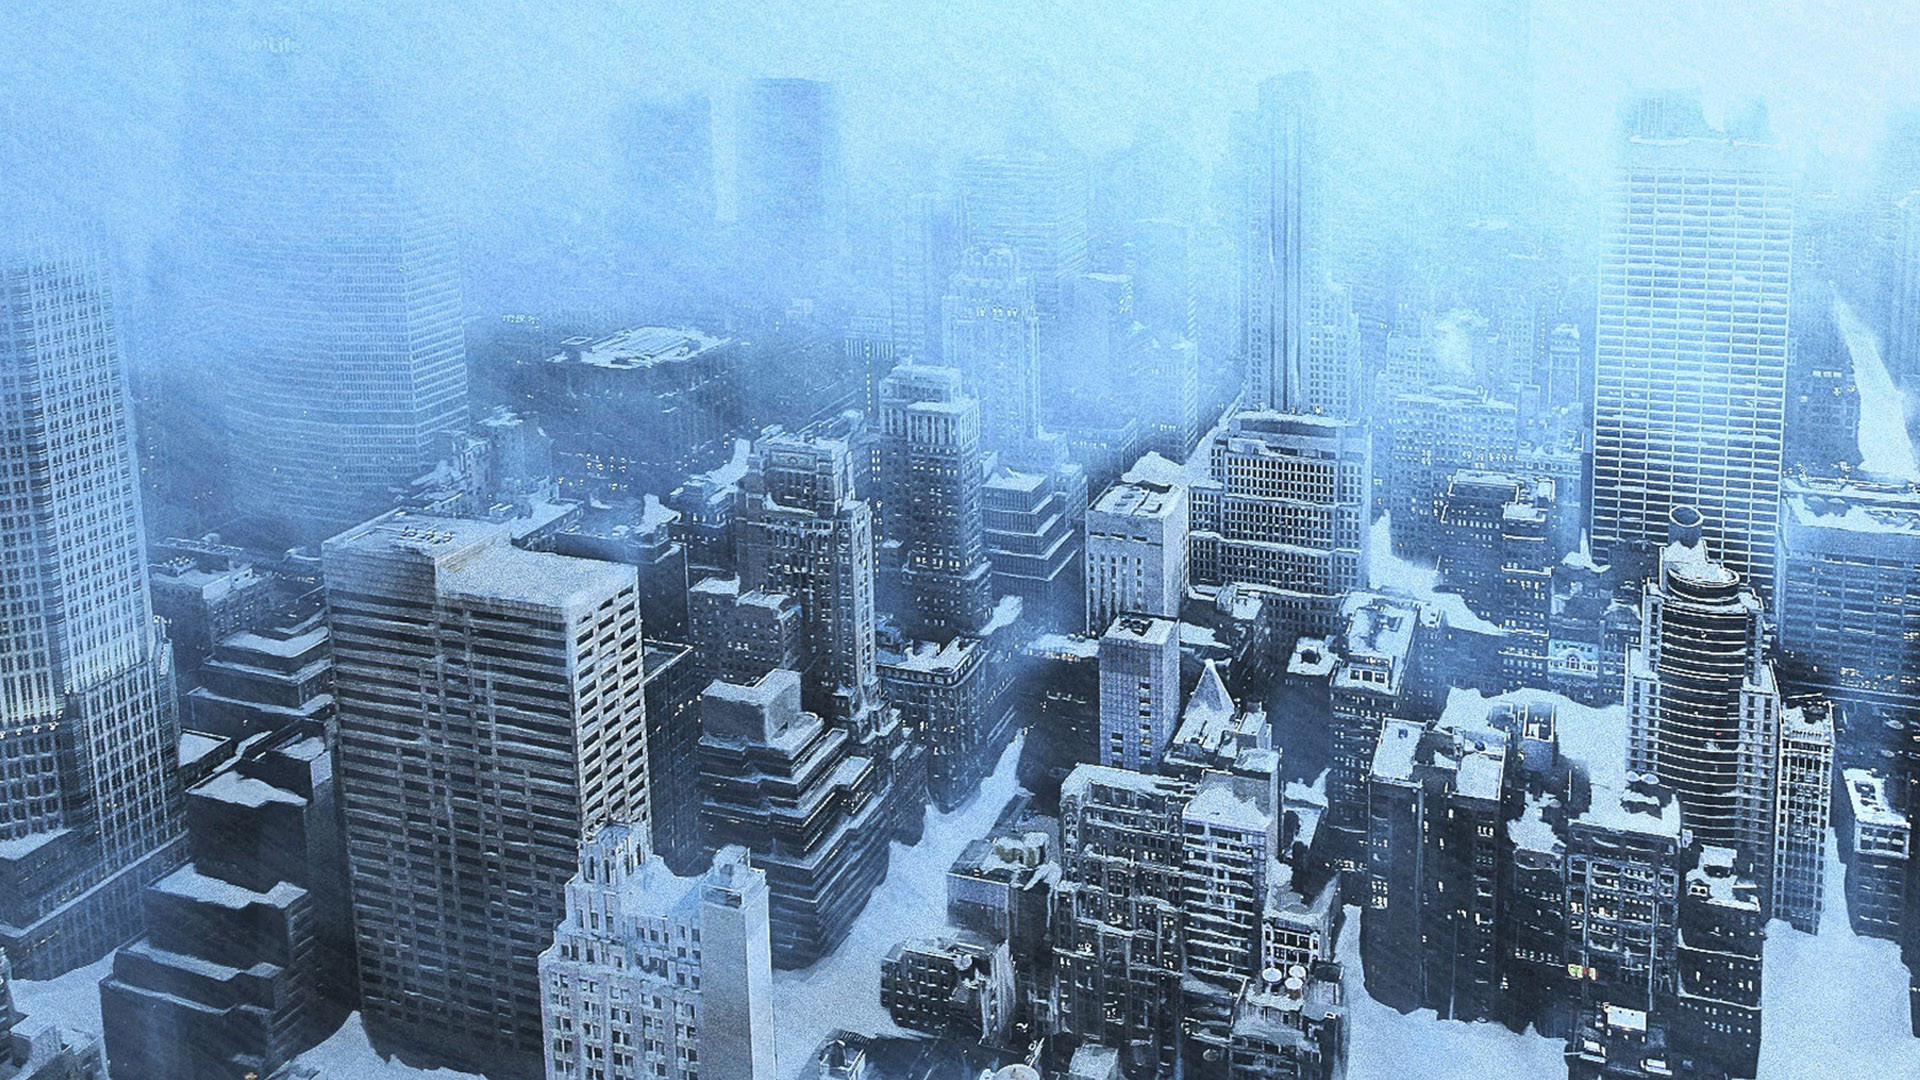 apocalyptic winter snow ice dark sci-fi city wallpaper background .